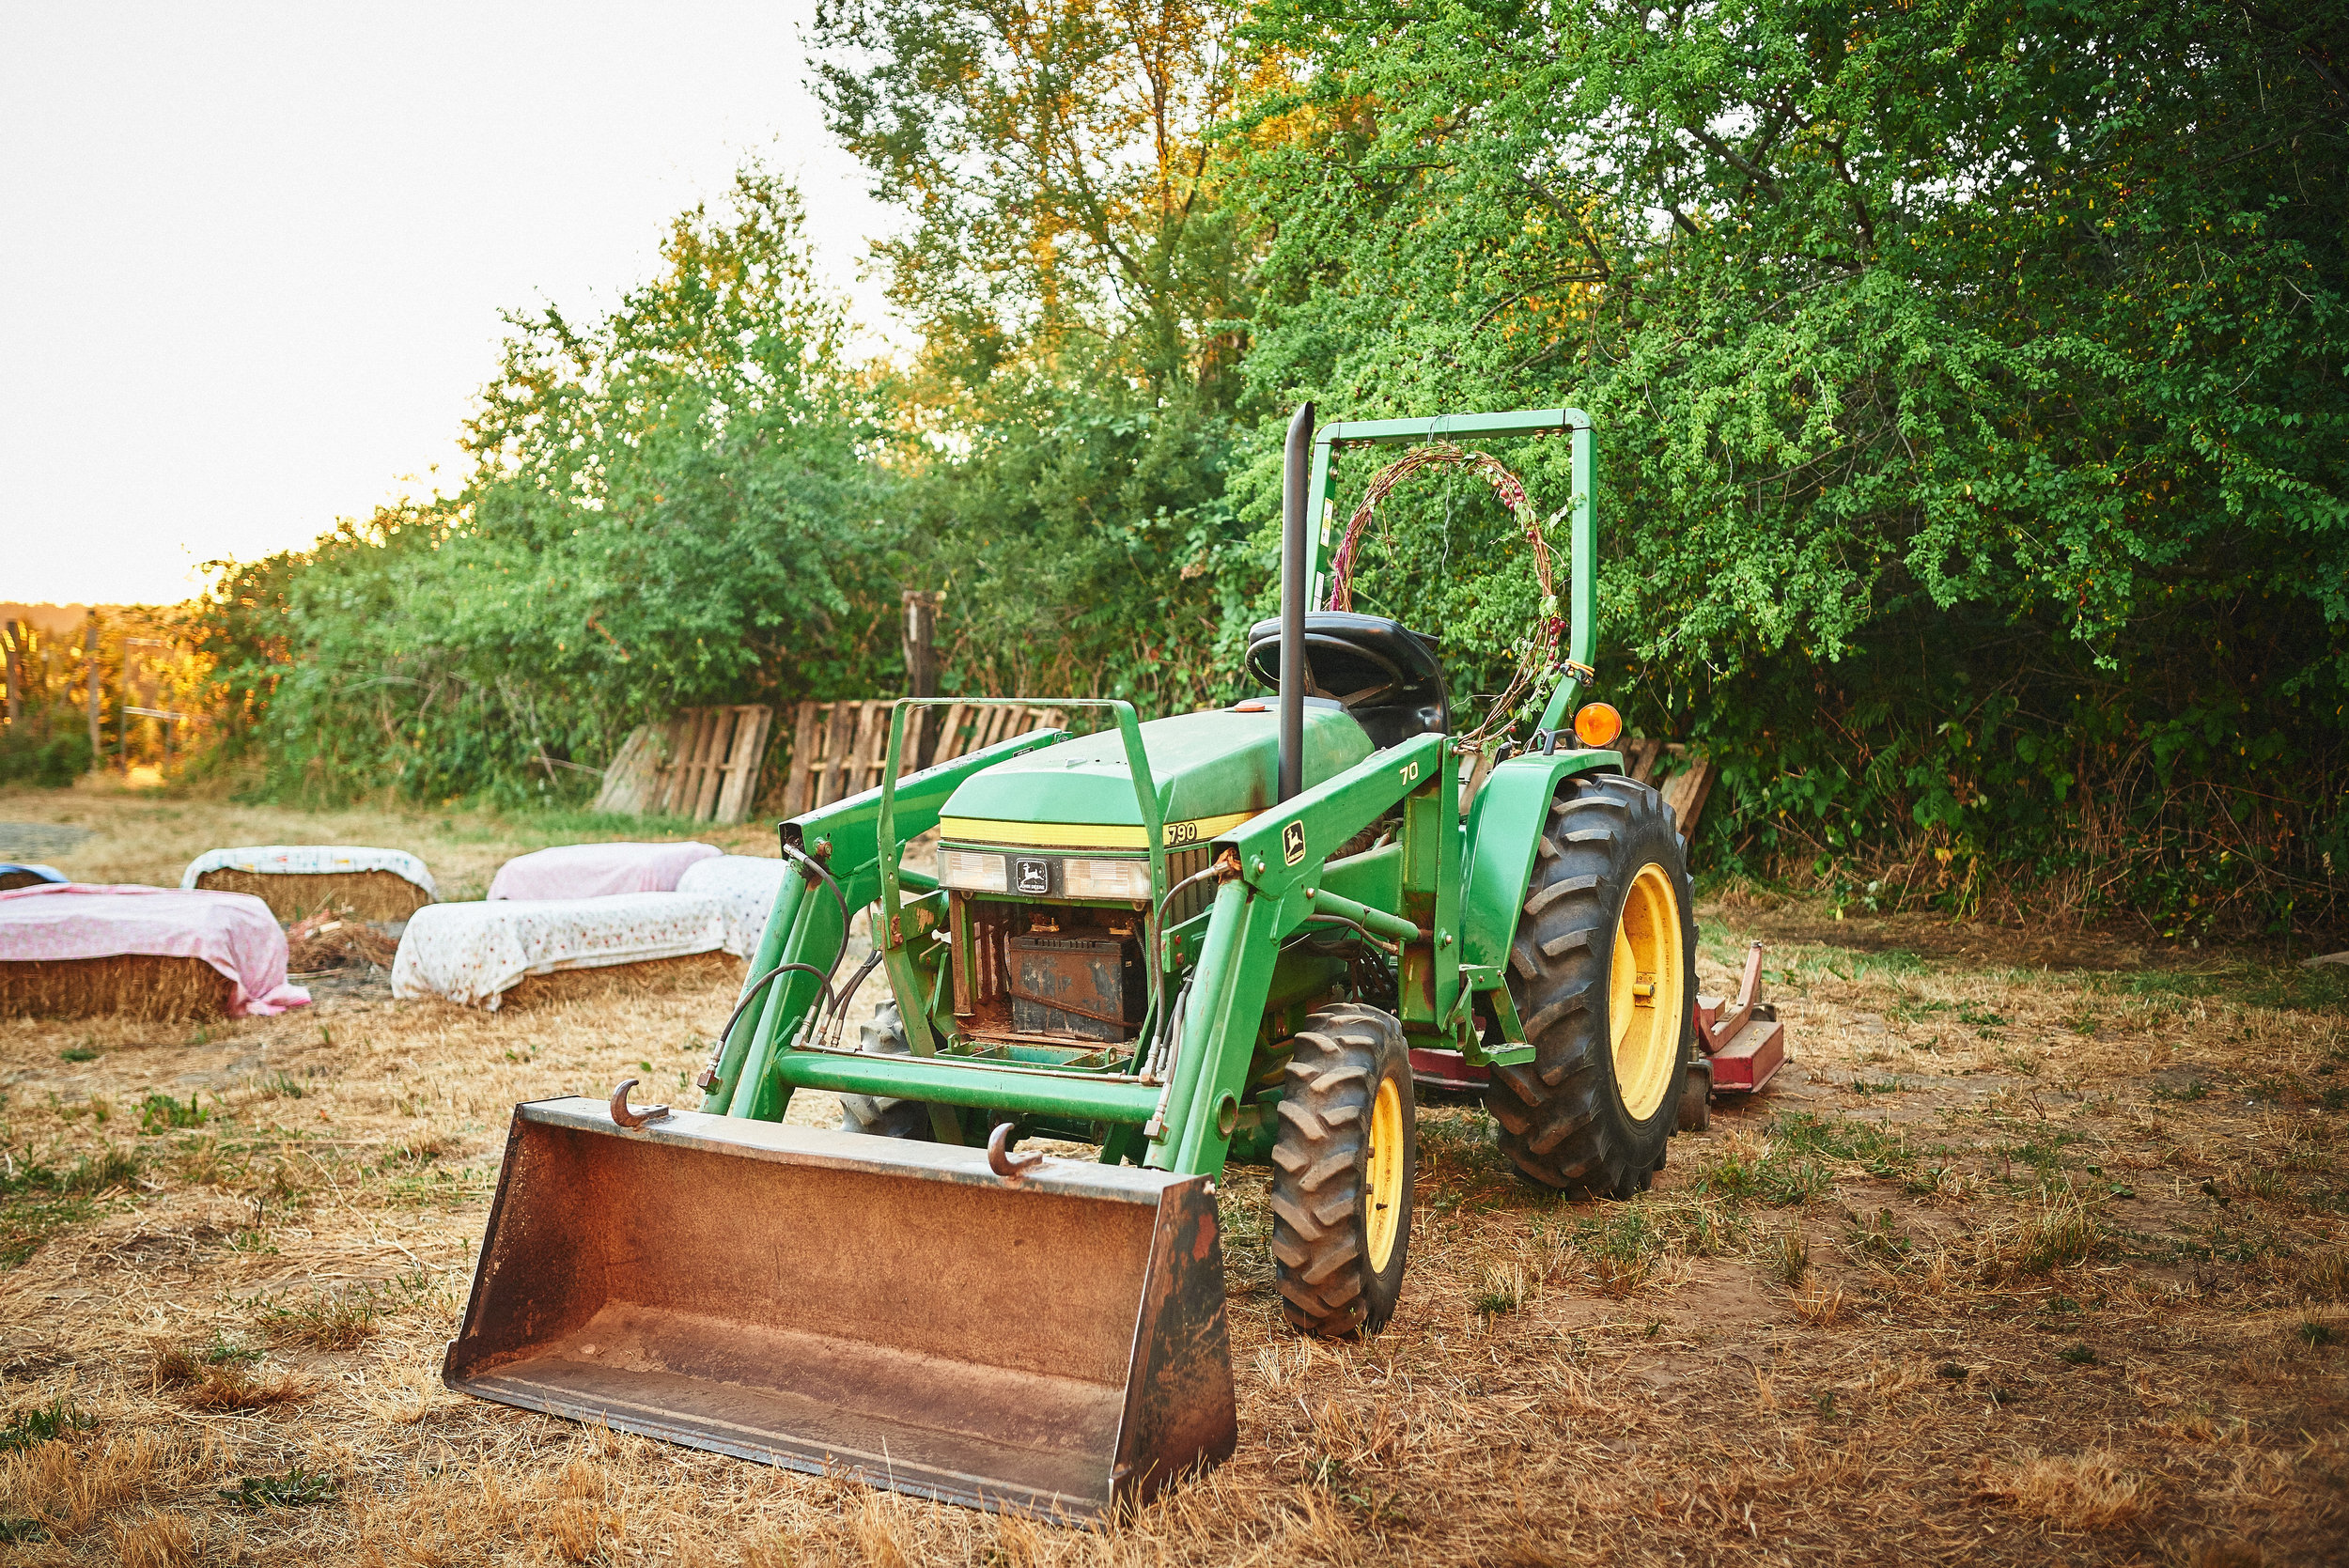 plum nelli outdoor farm wedding haybales and tractor.jpg